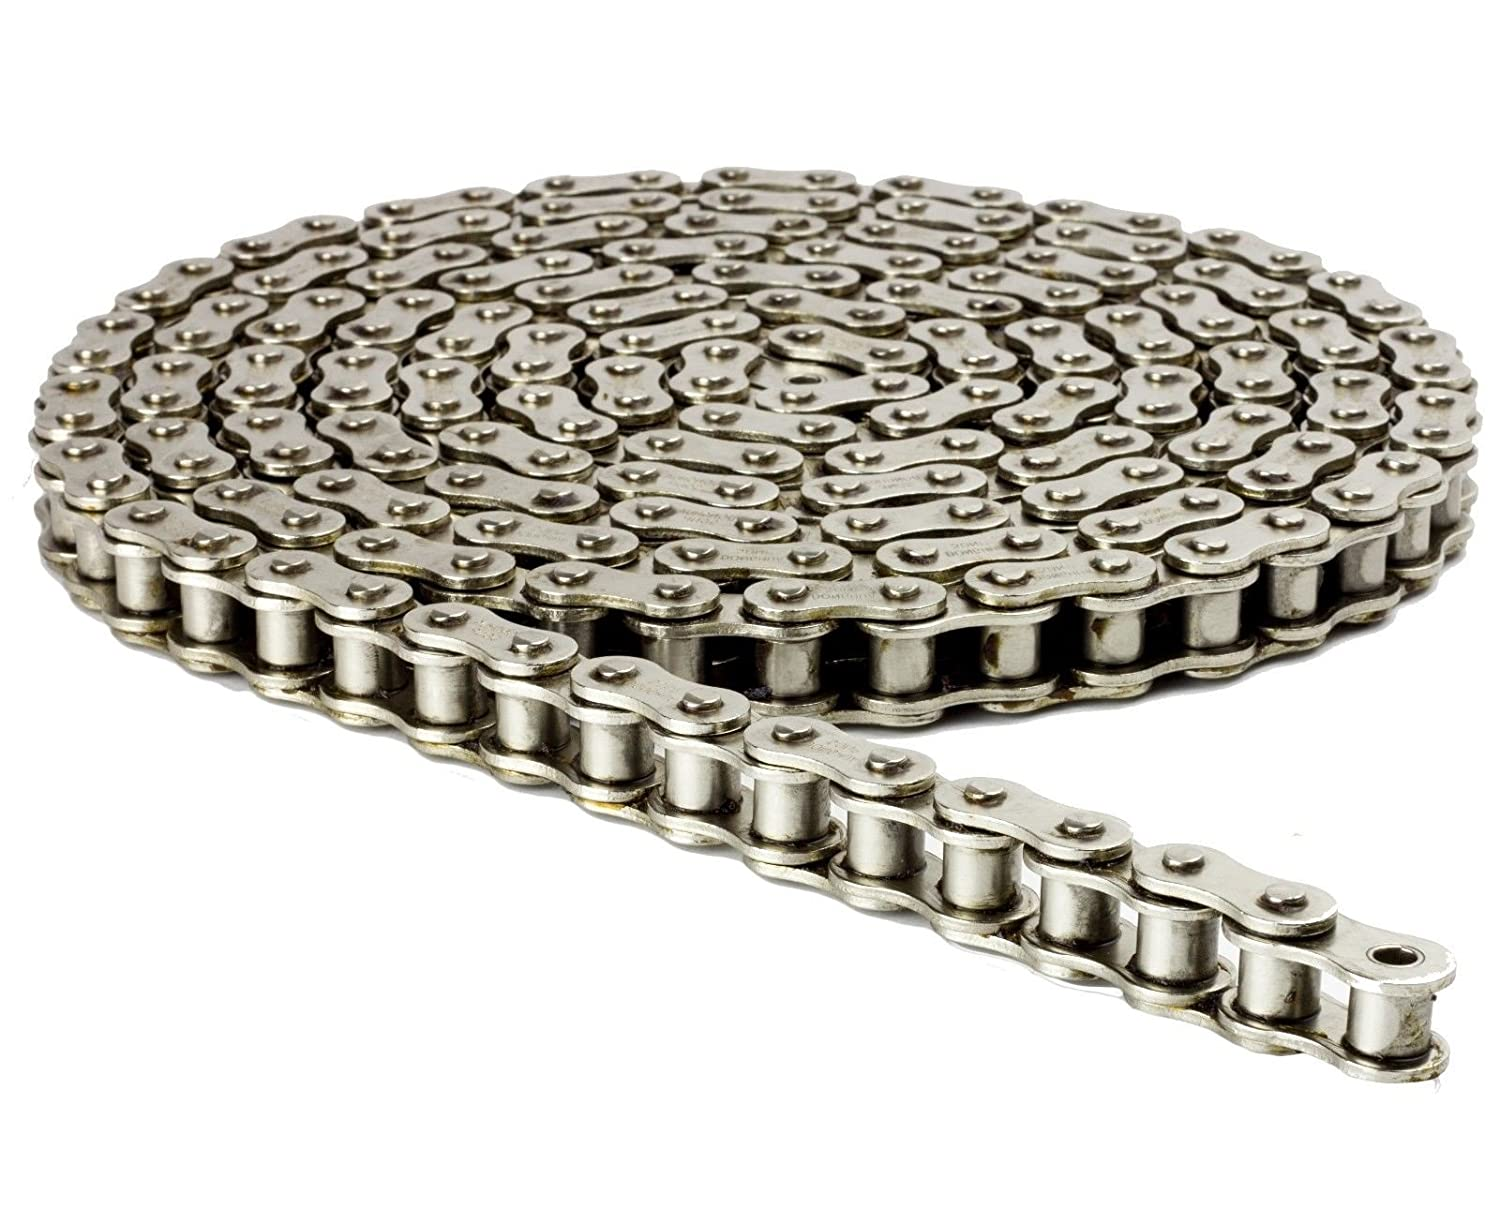 415H Nickel Plated Heavy Duty Chain 110 Links with 1 Connecting Link